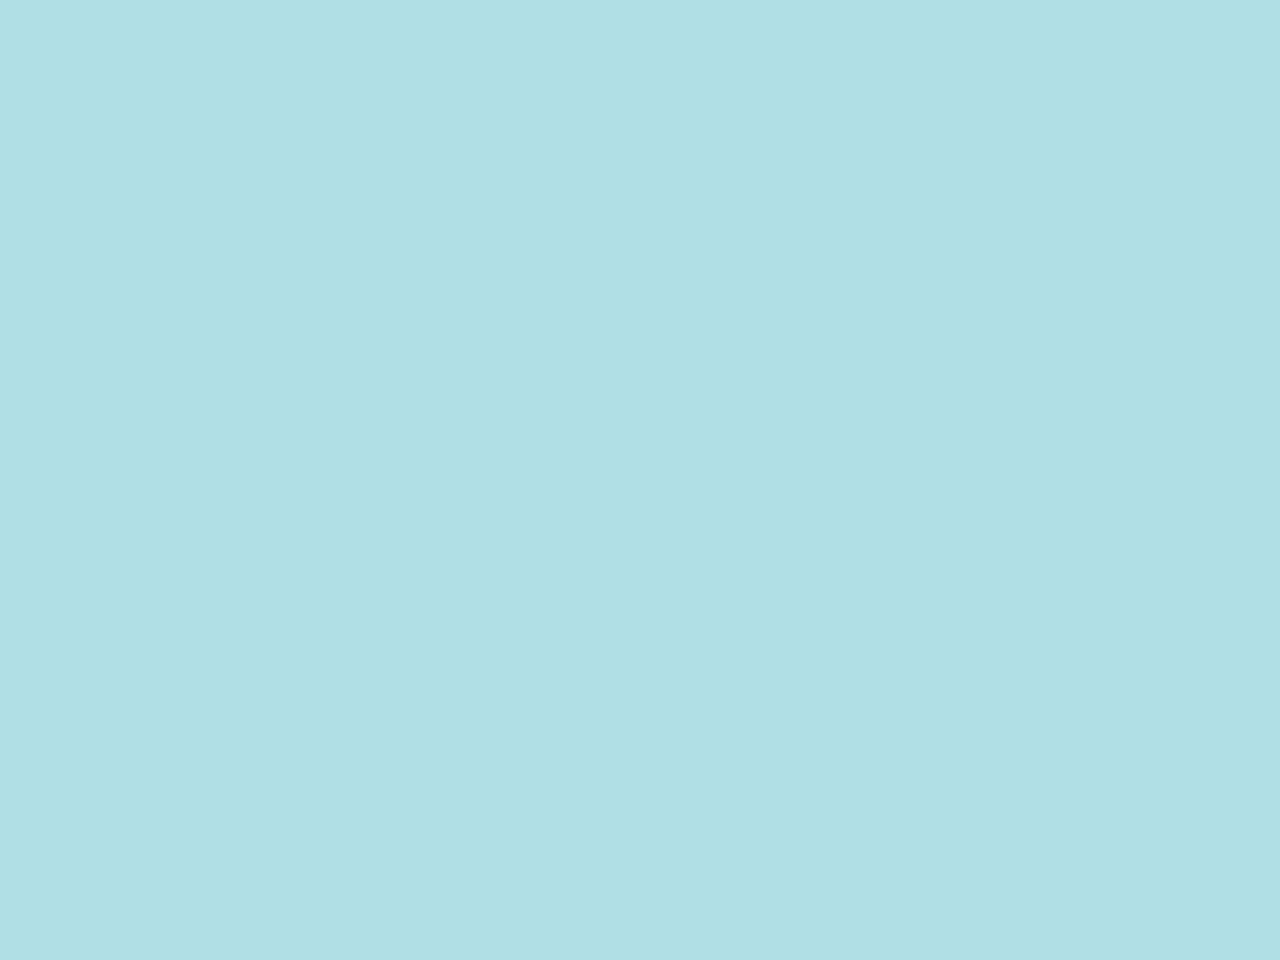 1280x960 resolution Powder Blue Web solid color background view 1280x960